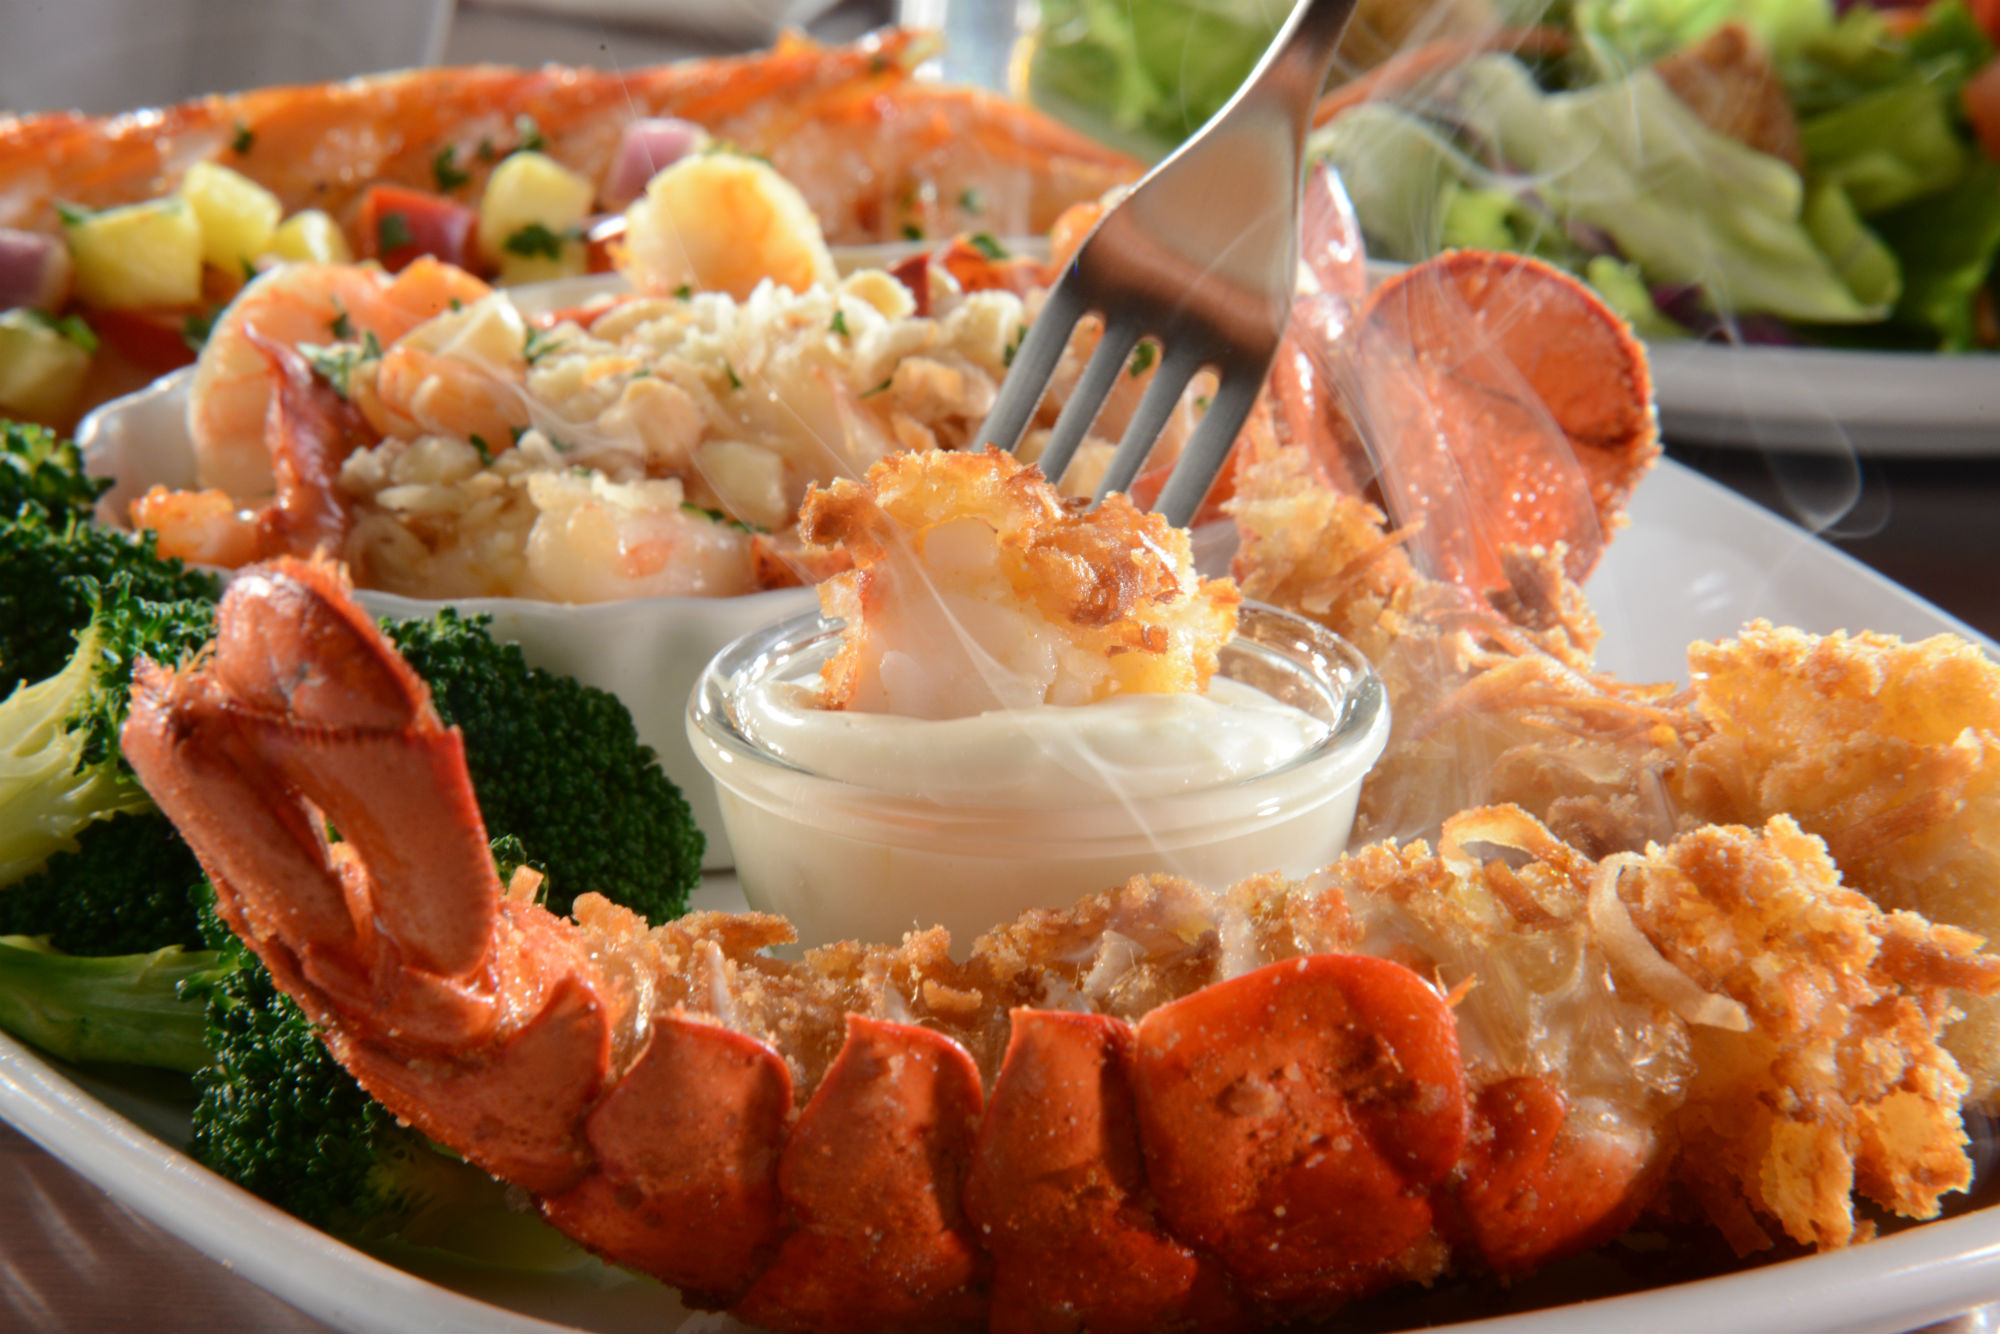 Photo credit: Red Lobster